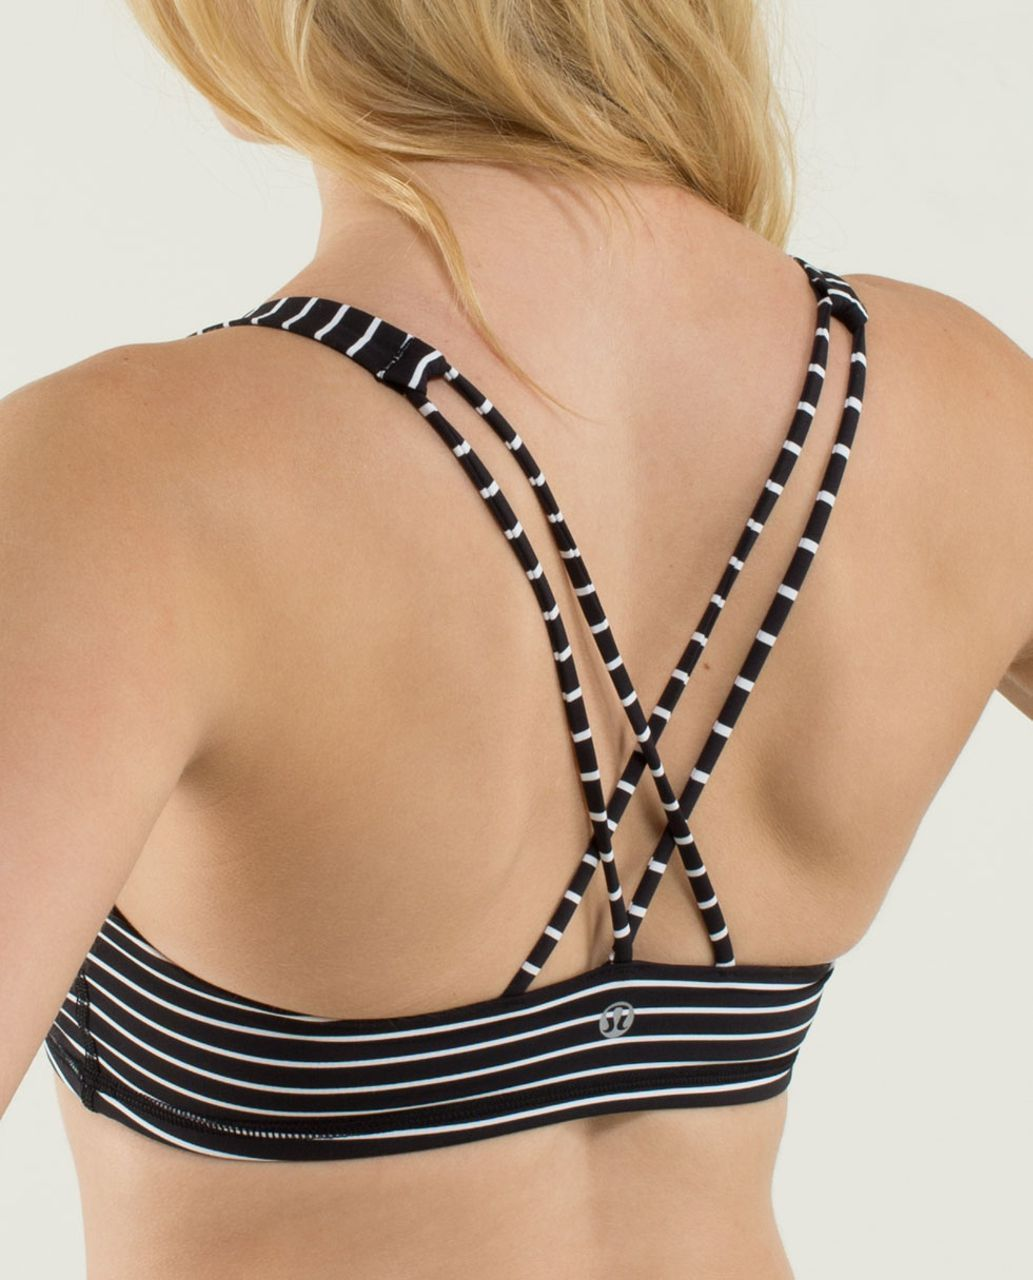 Lululemon Free To Be Bra - Parallel Stripe Black White (First Release)